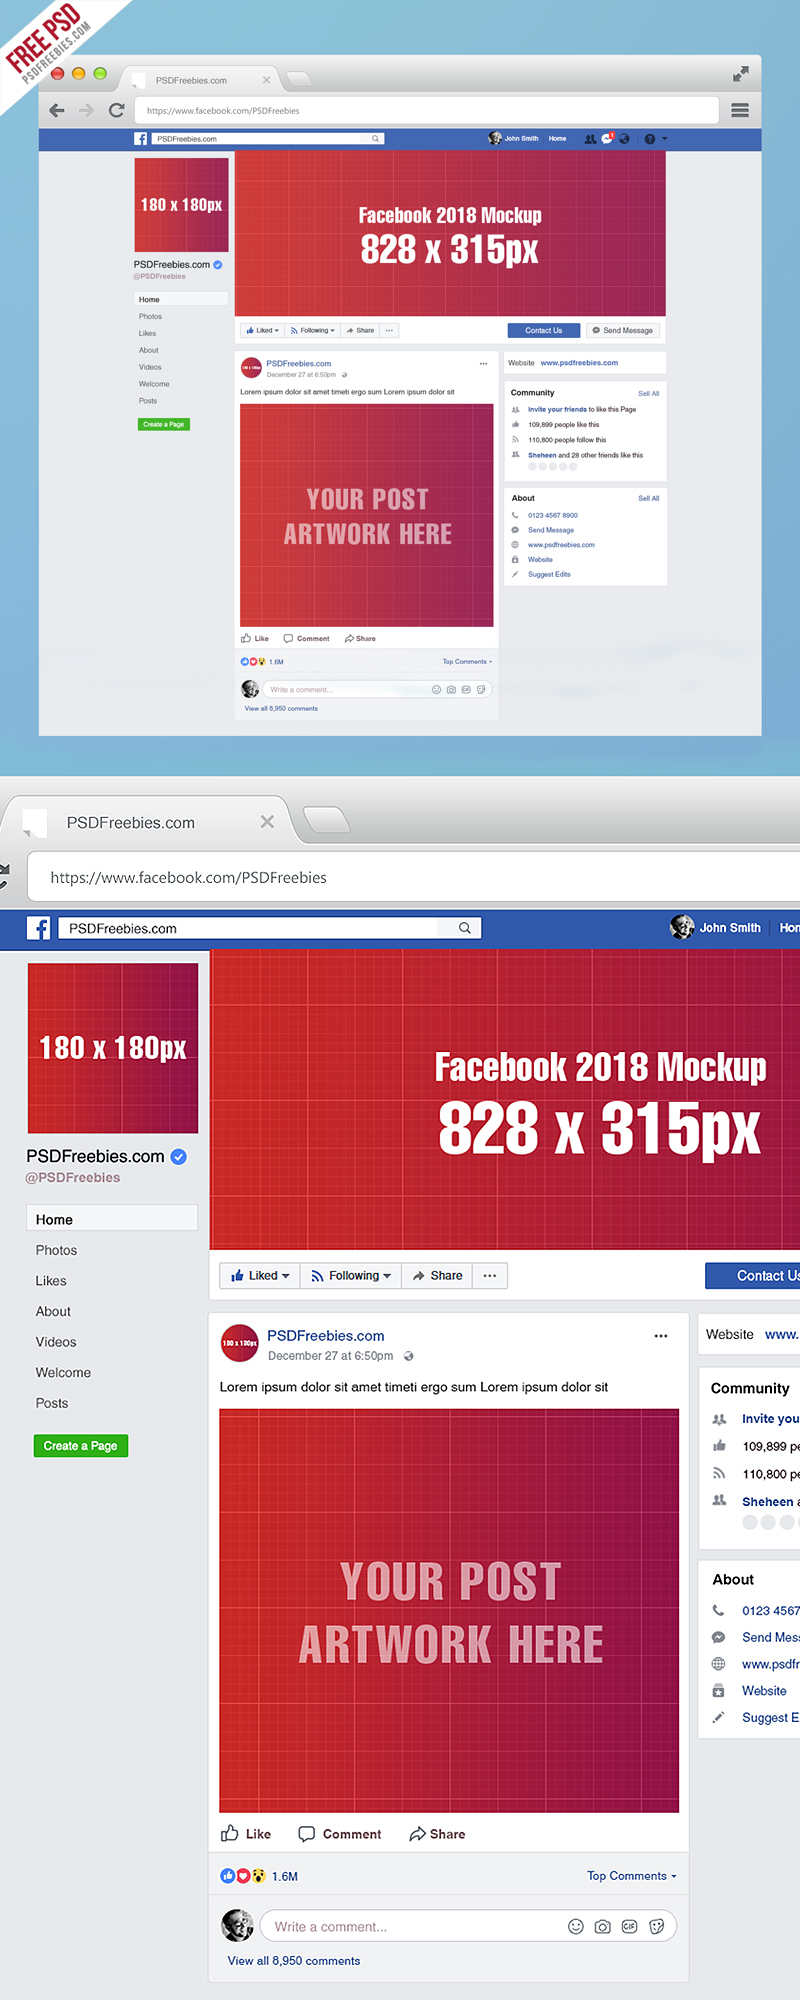 Facebook page mockup 2018 template psd on behance this facebook page mockup 2018 template psd is available for free download maxwellsz